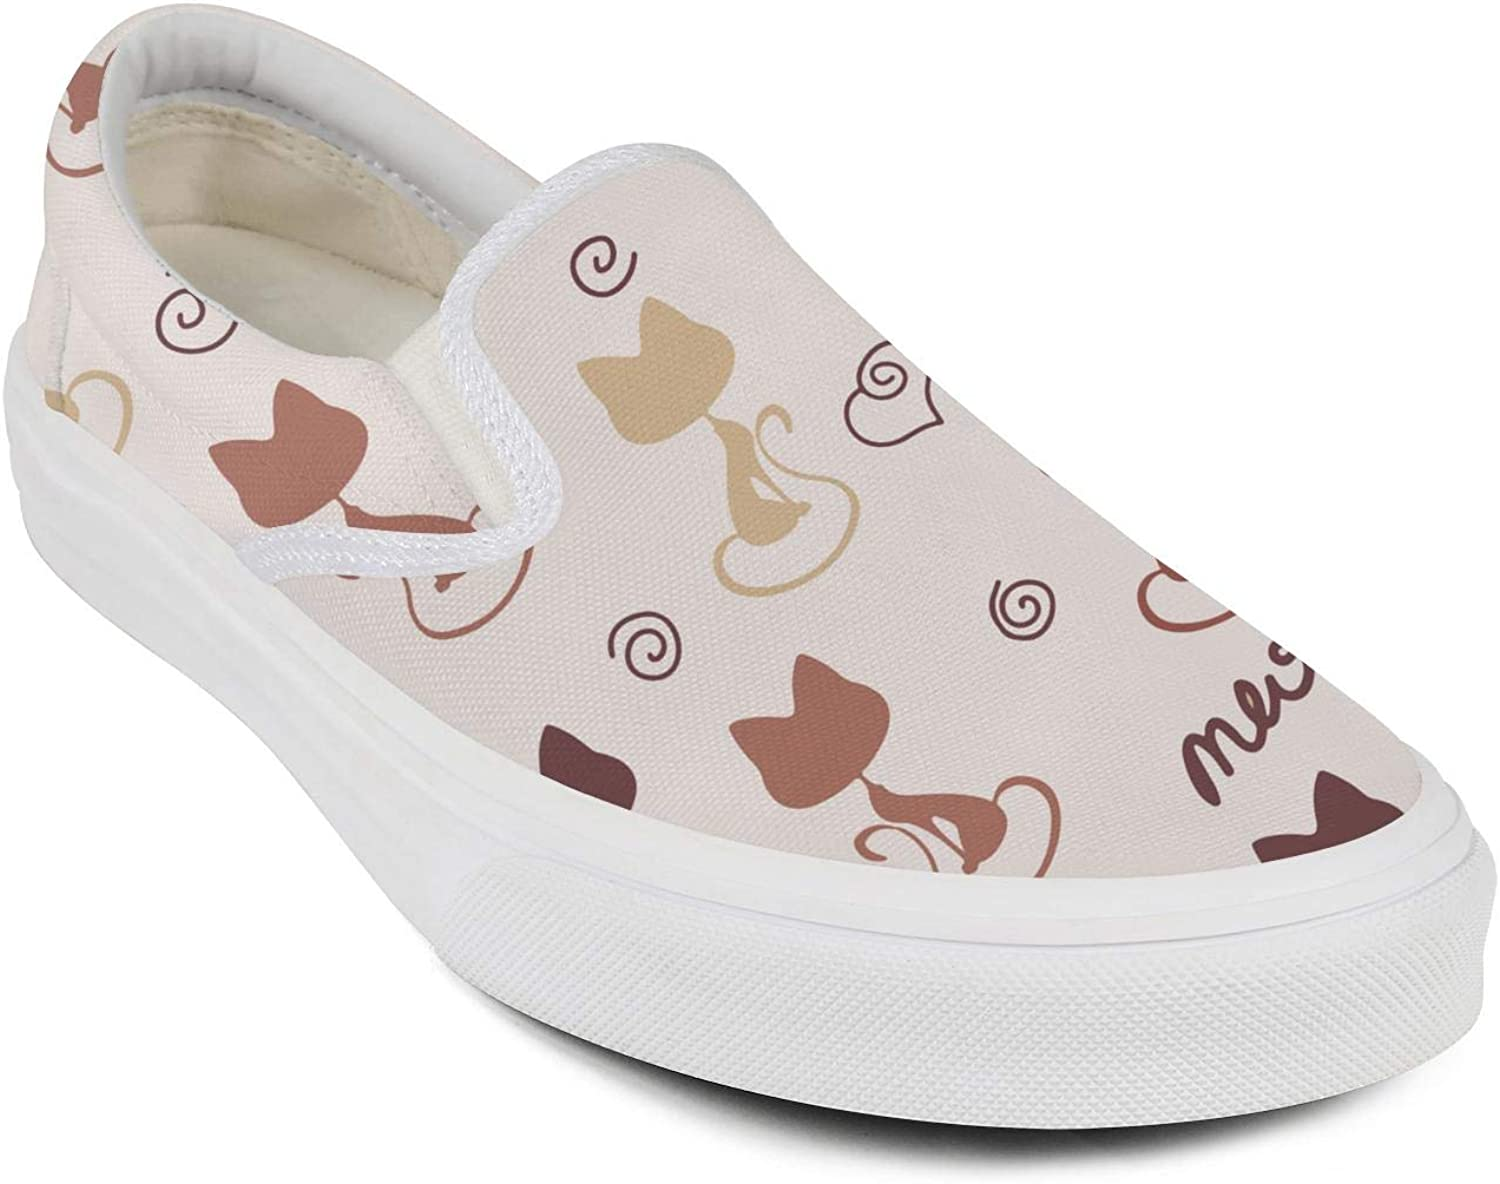 Womens Roses in The Cat Casual Shoes Cute Canvas Walking Shoes for Women